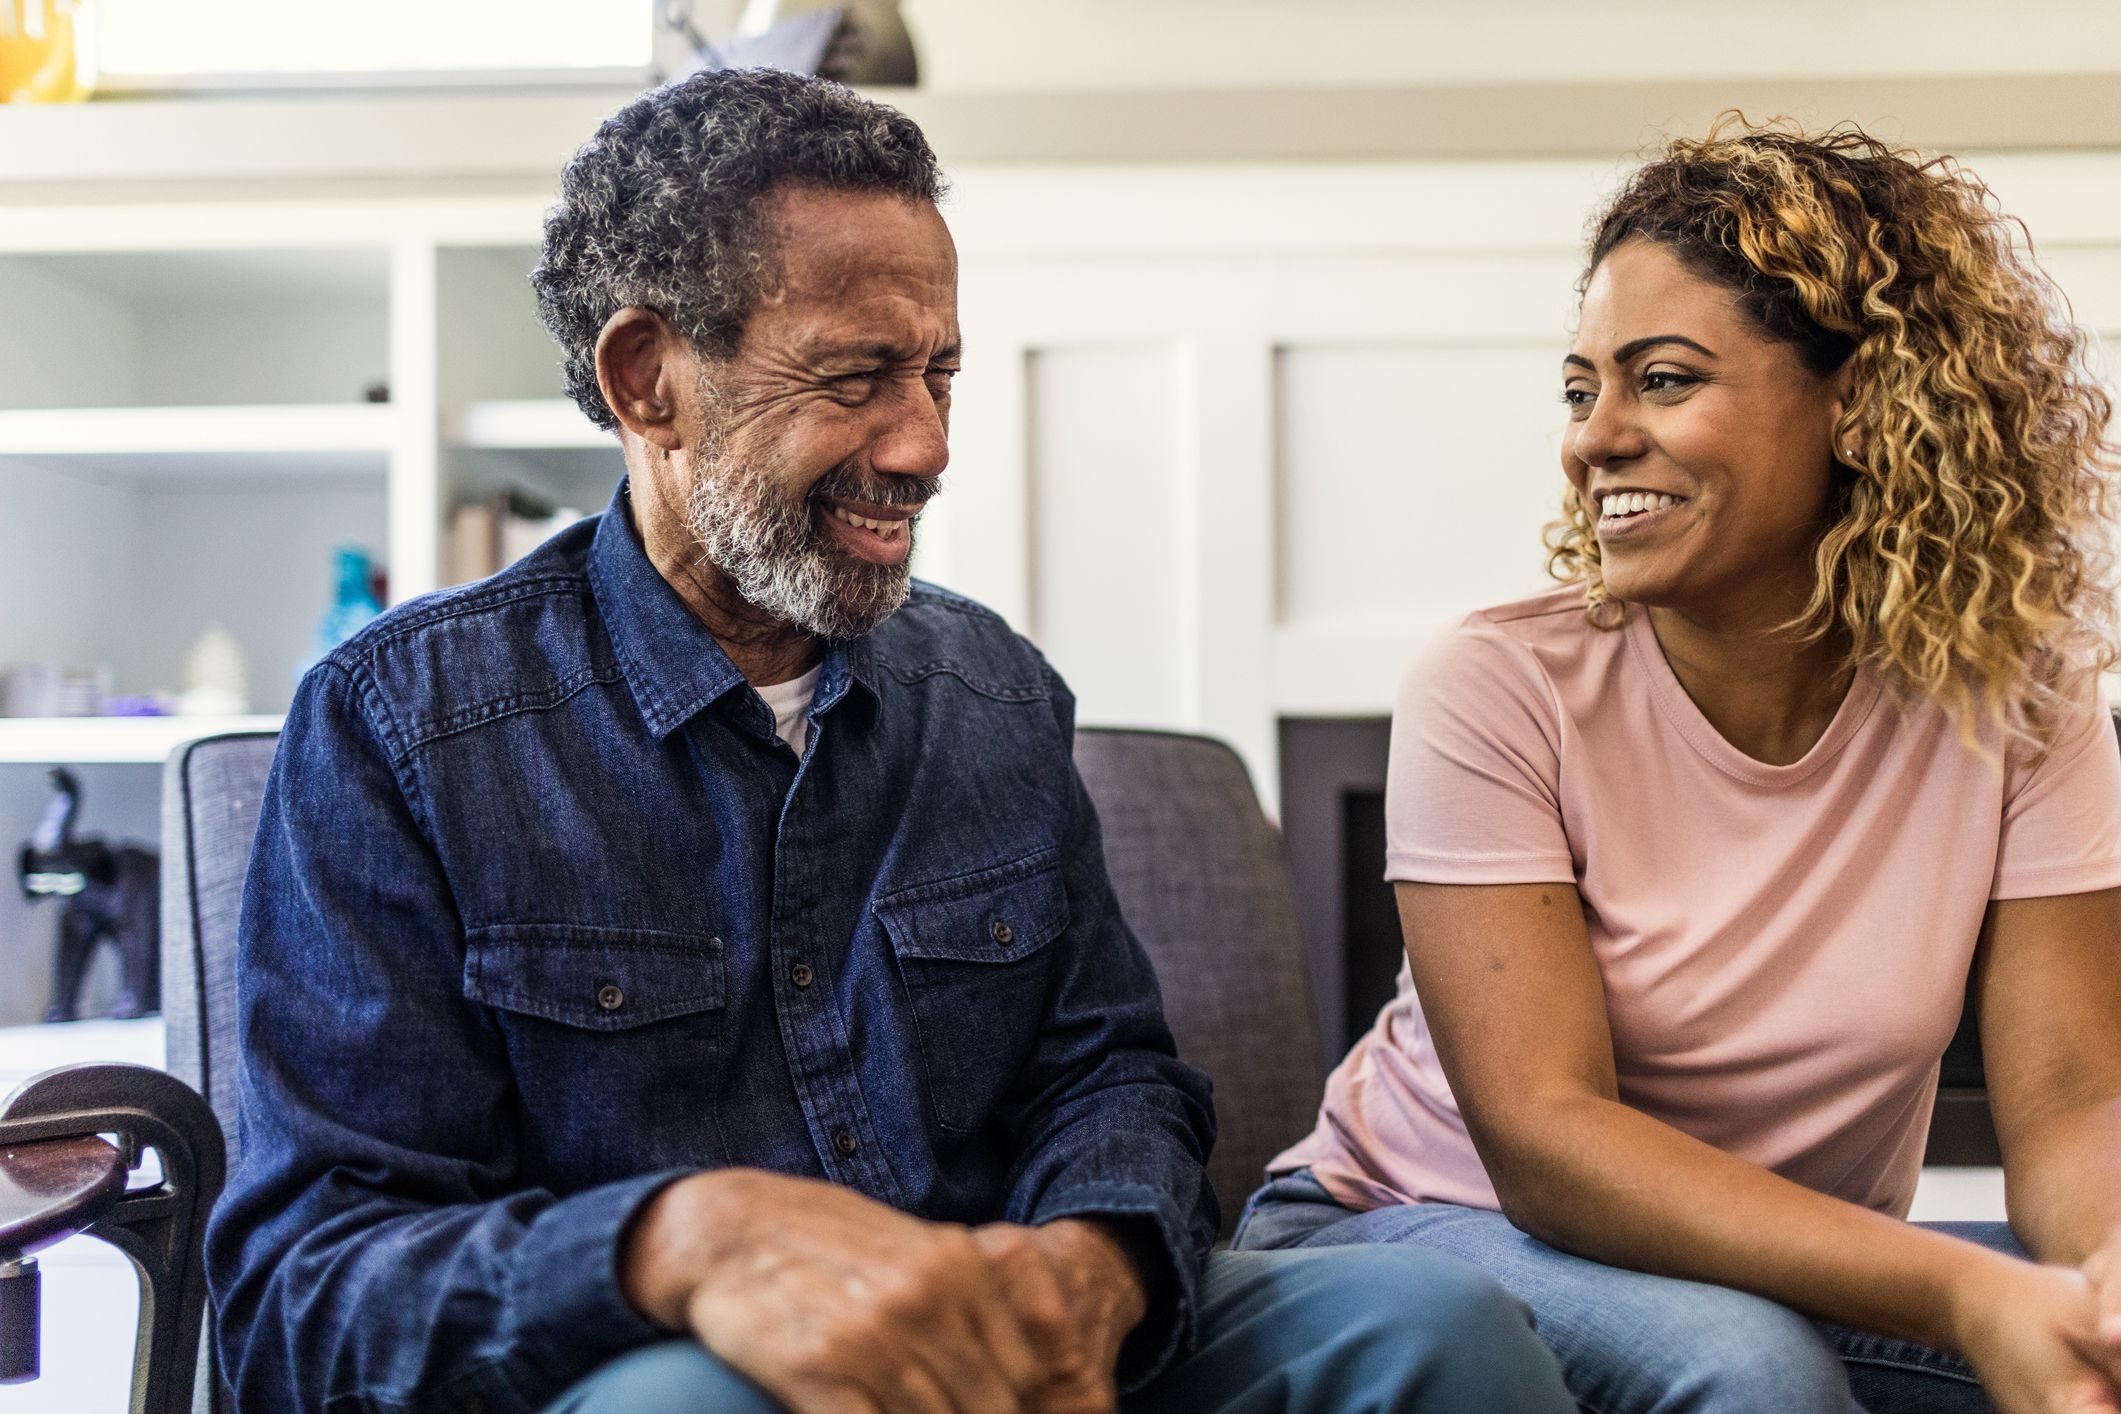 How to Rekindle a Relationship With an Estranged Family Member